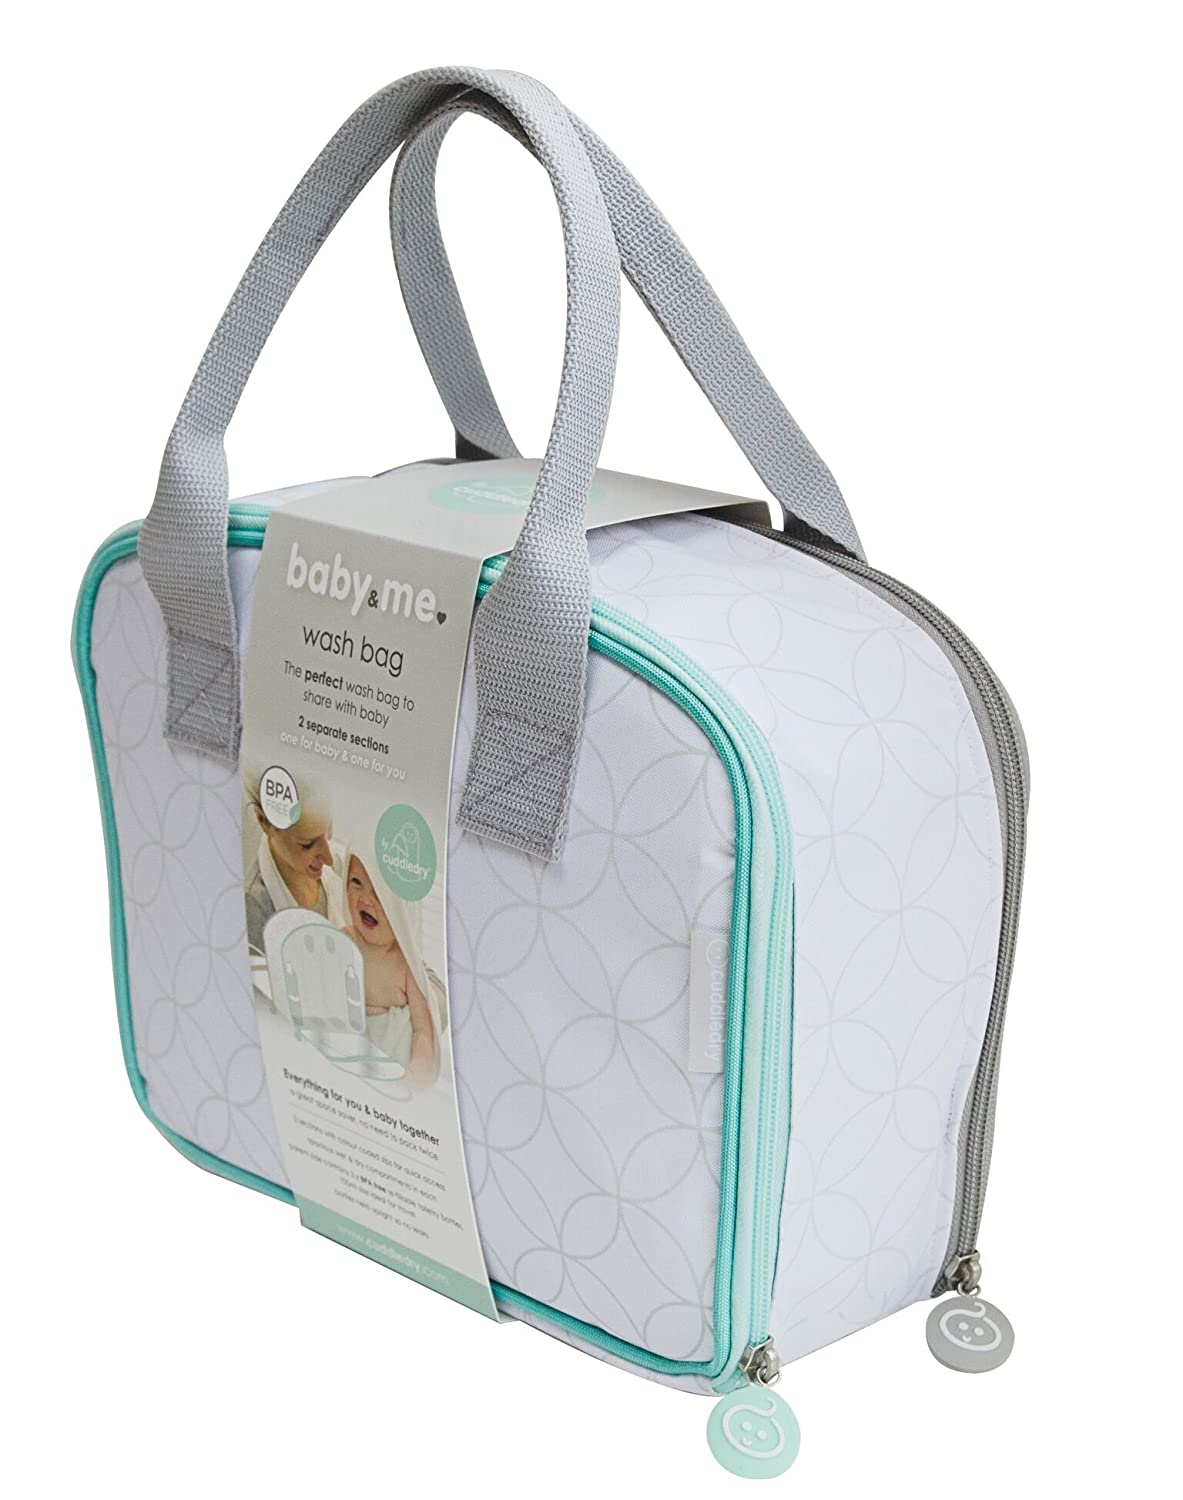 'Baby & Me' Two Section Two Zip Clever Washbag • for The organised Parent and Baby Cuddledry BME01